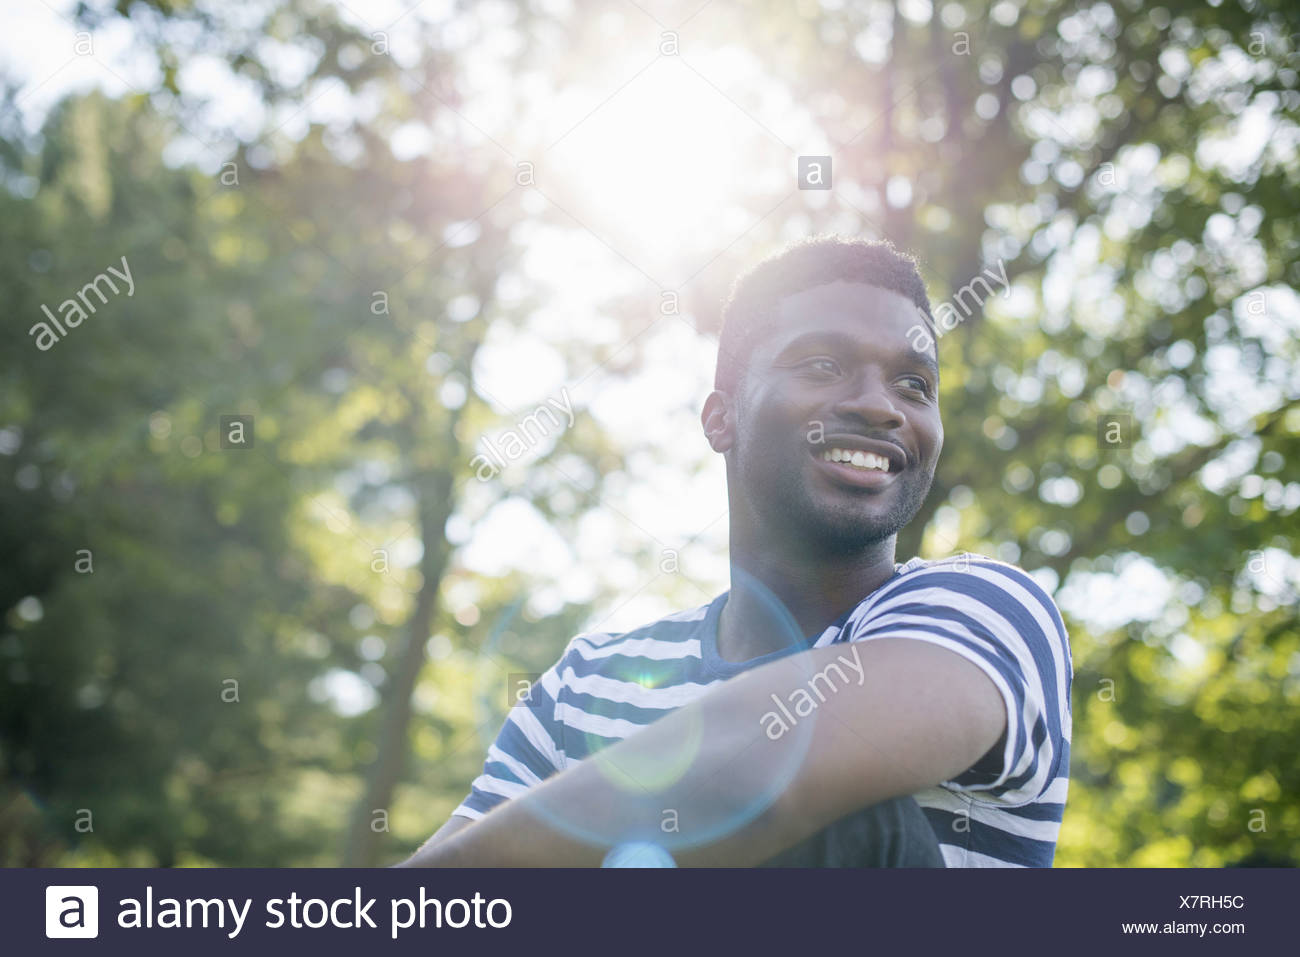 A man in a striped shirt under the shade of trees - Stock Image